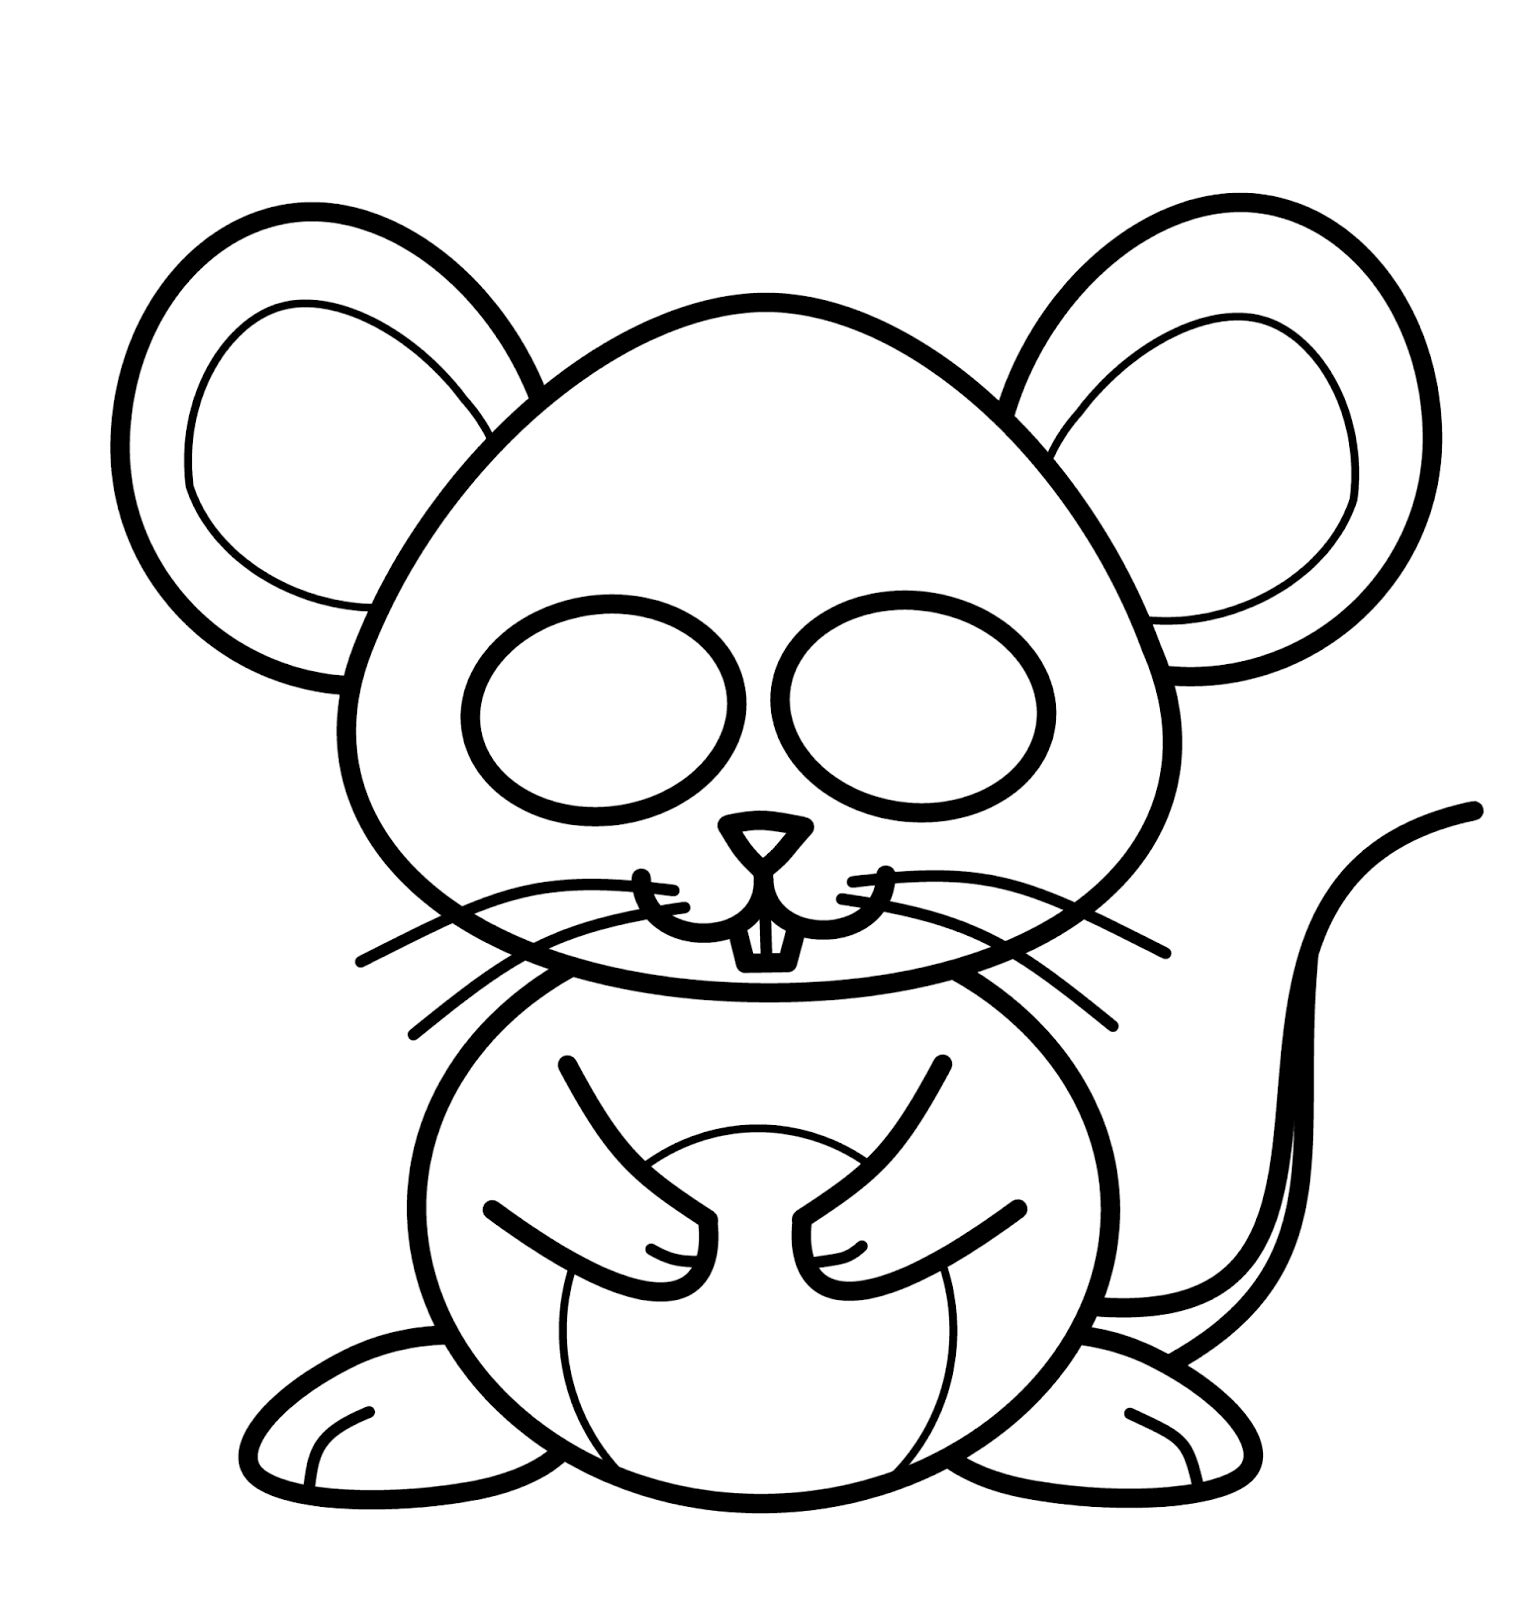 how to draw cartoons mouse